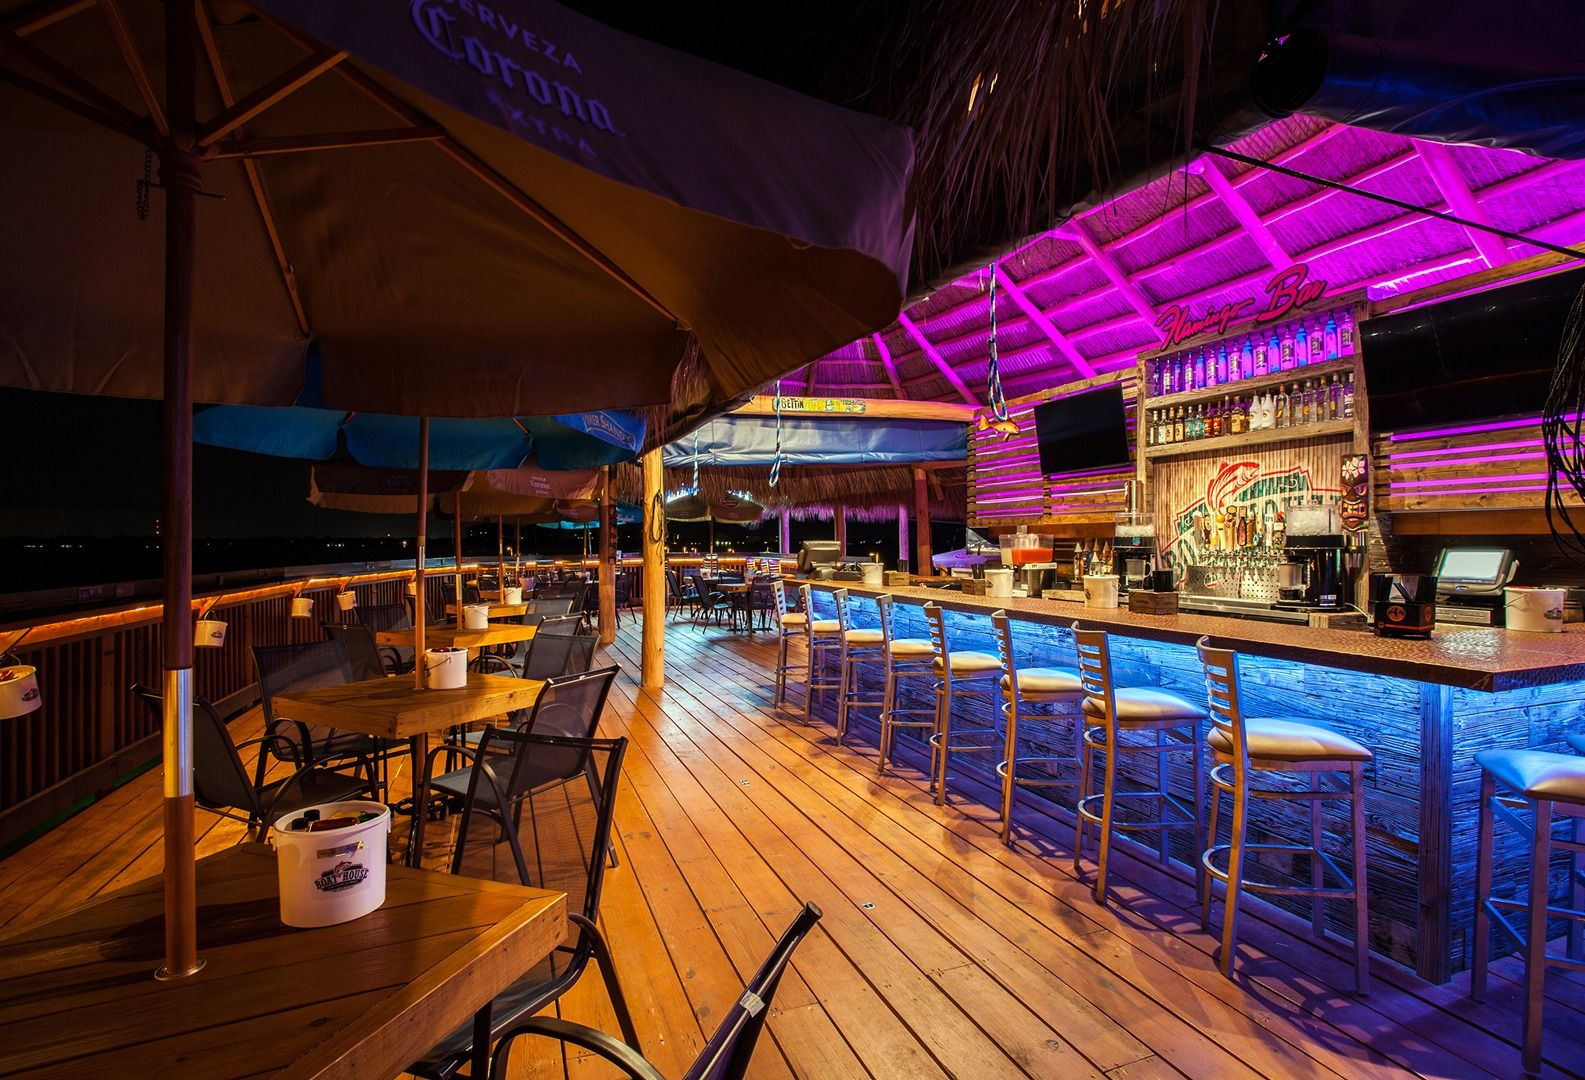 The boathouse tiki bar grill 5819 driftwood pkwy cape coral fl 33904 places to experience - Restaurant bar and grill ...